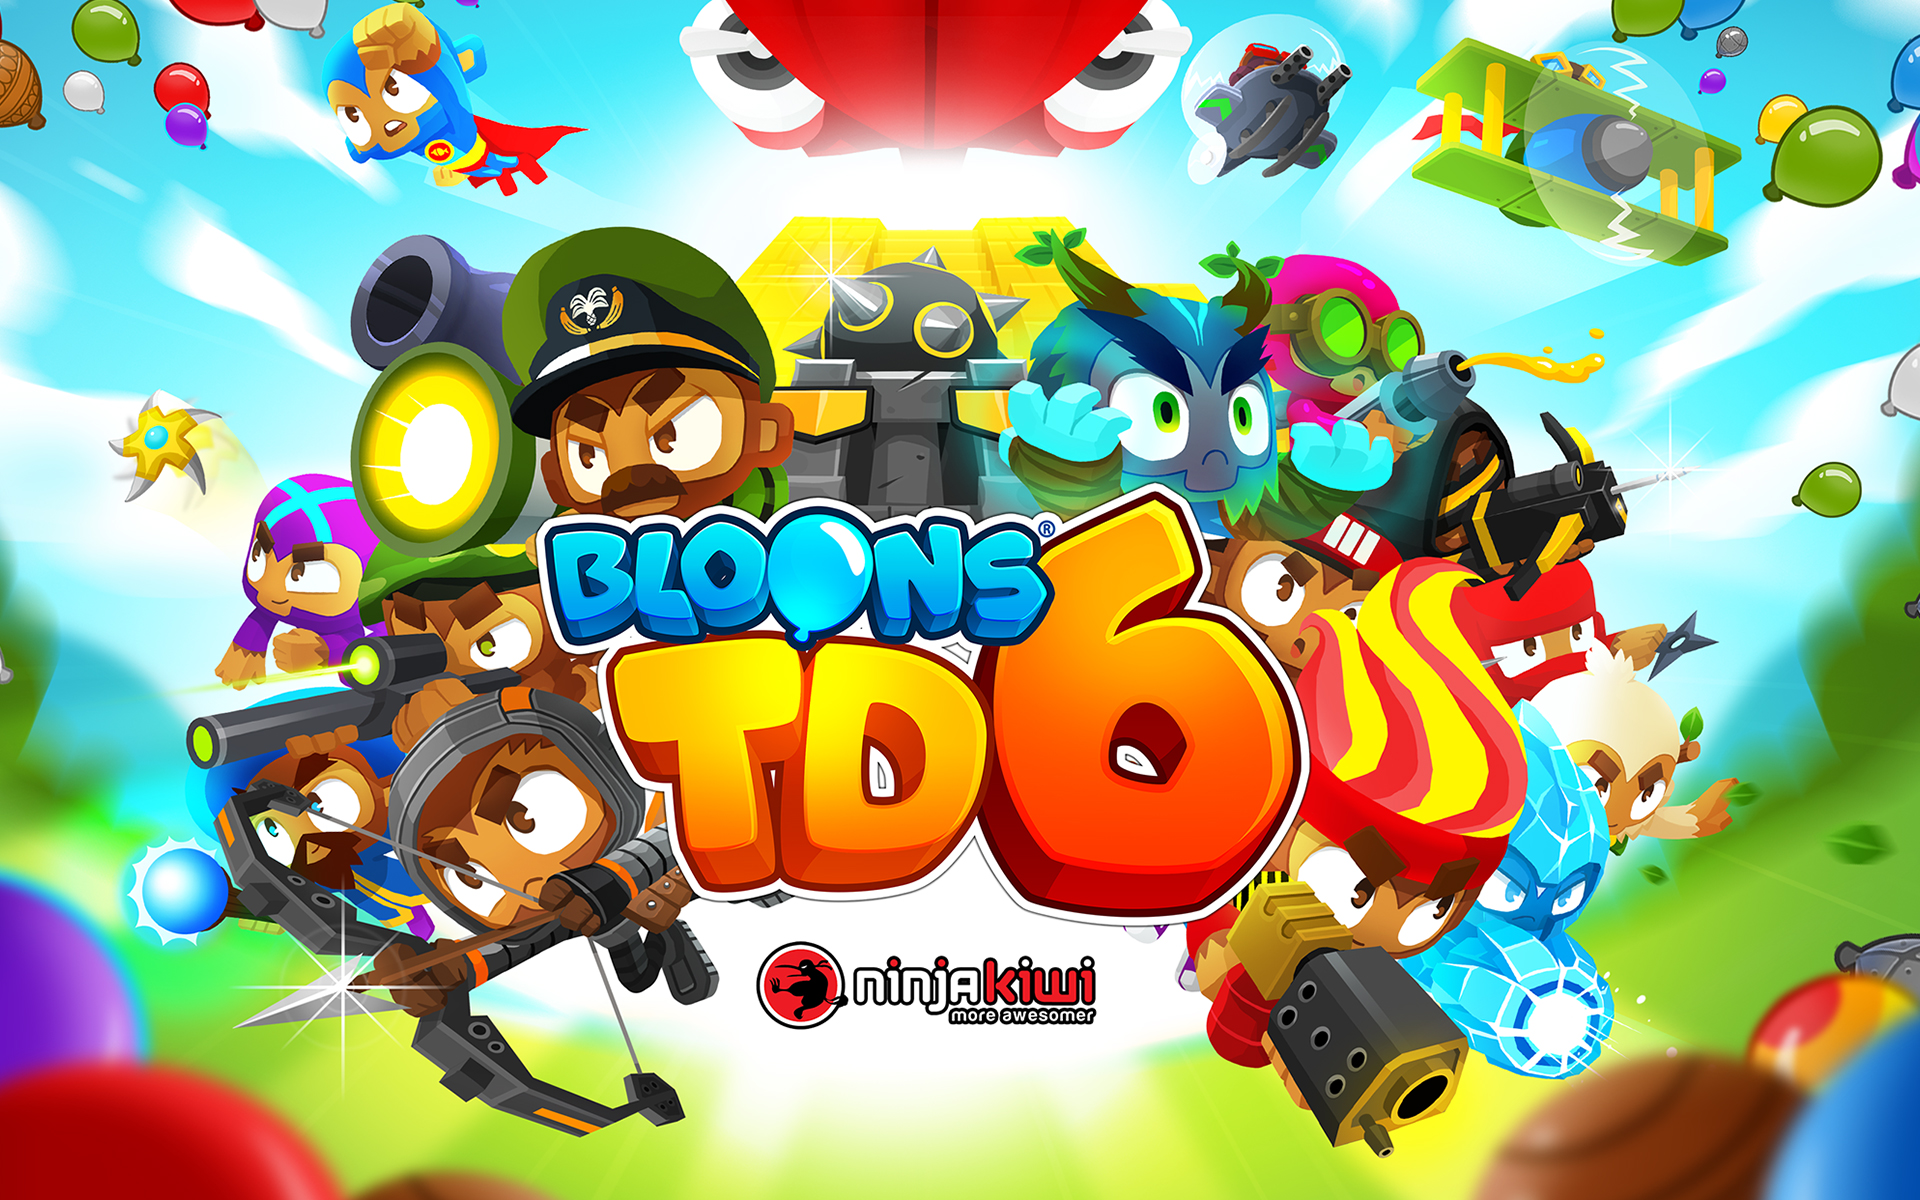 Bloons Super Monkey 2 - Ninja Kiwi - Free Online Games ...